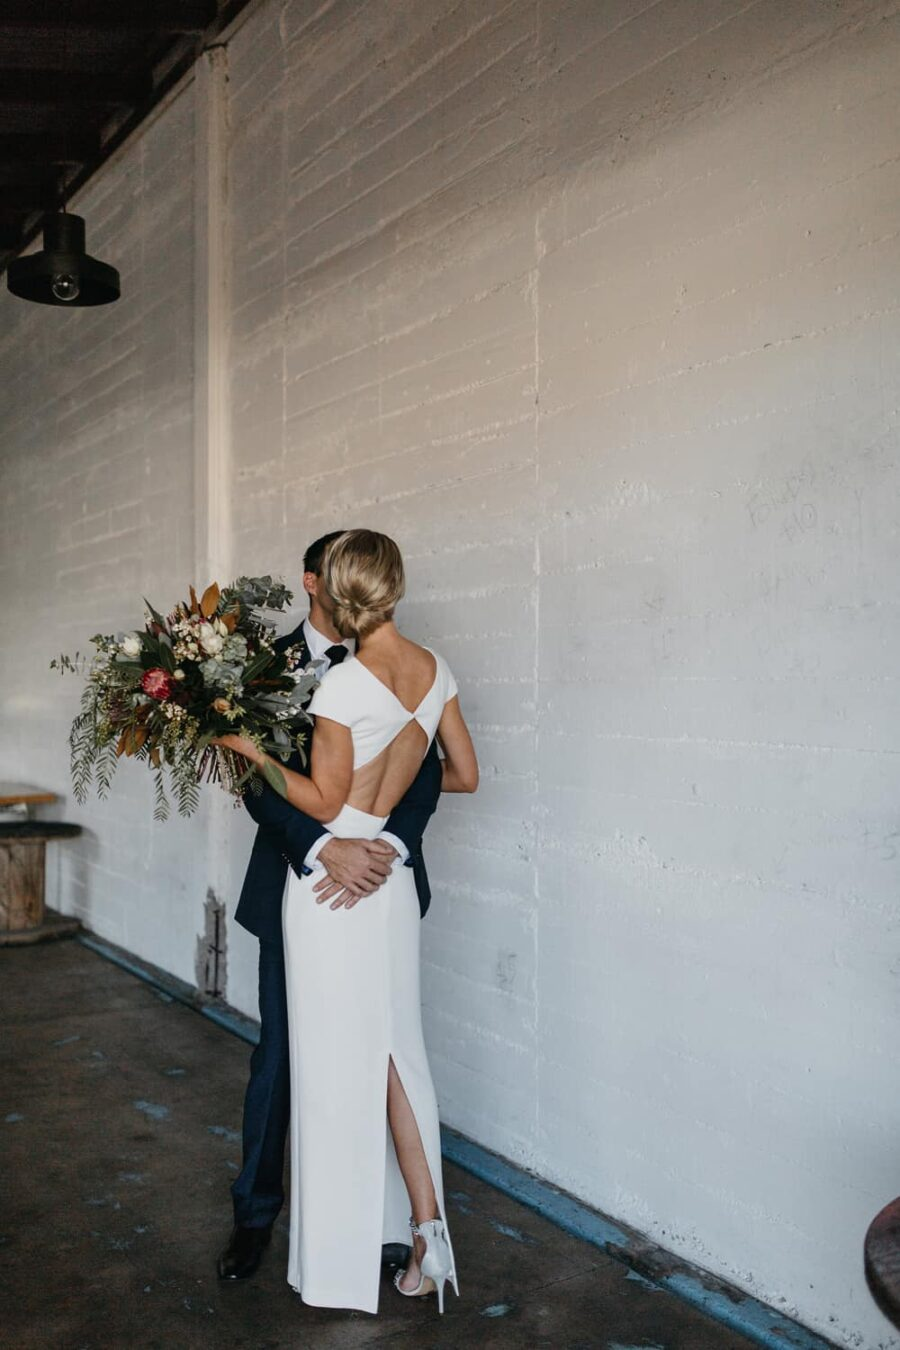 Modern Townsville warehouse wedding – photography by SB Creative Co.